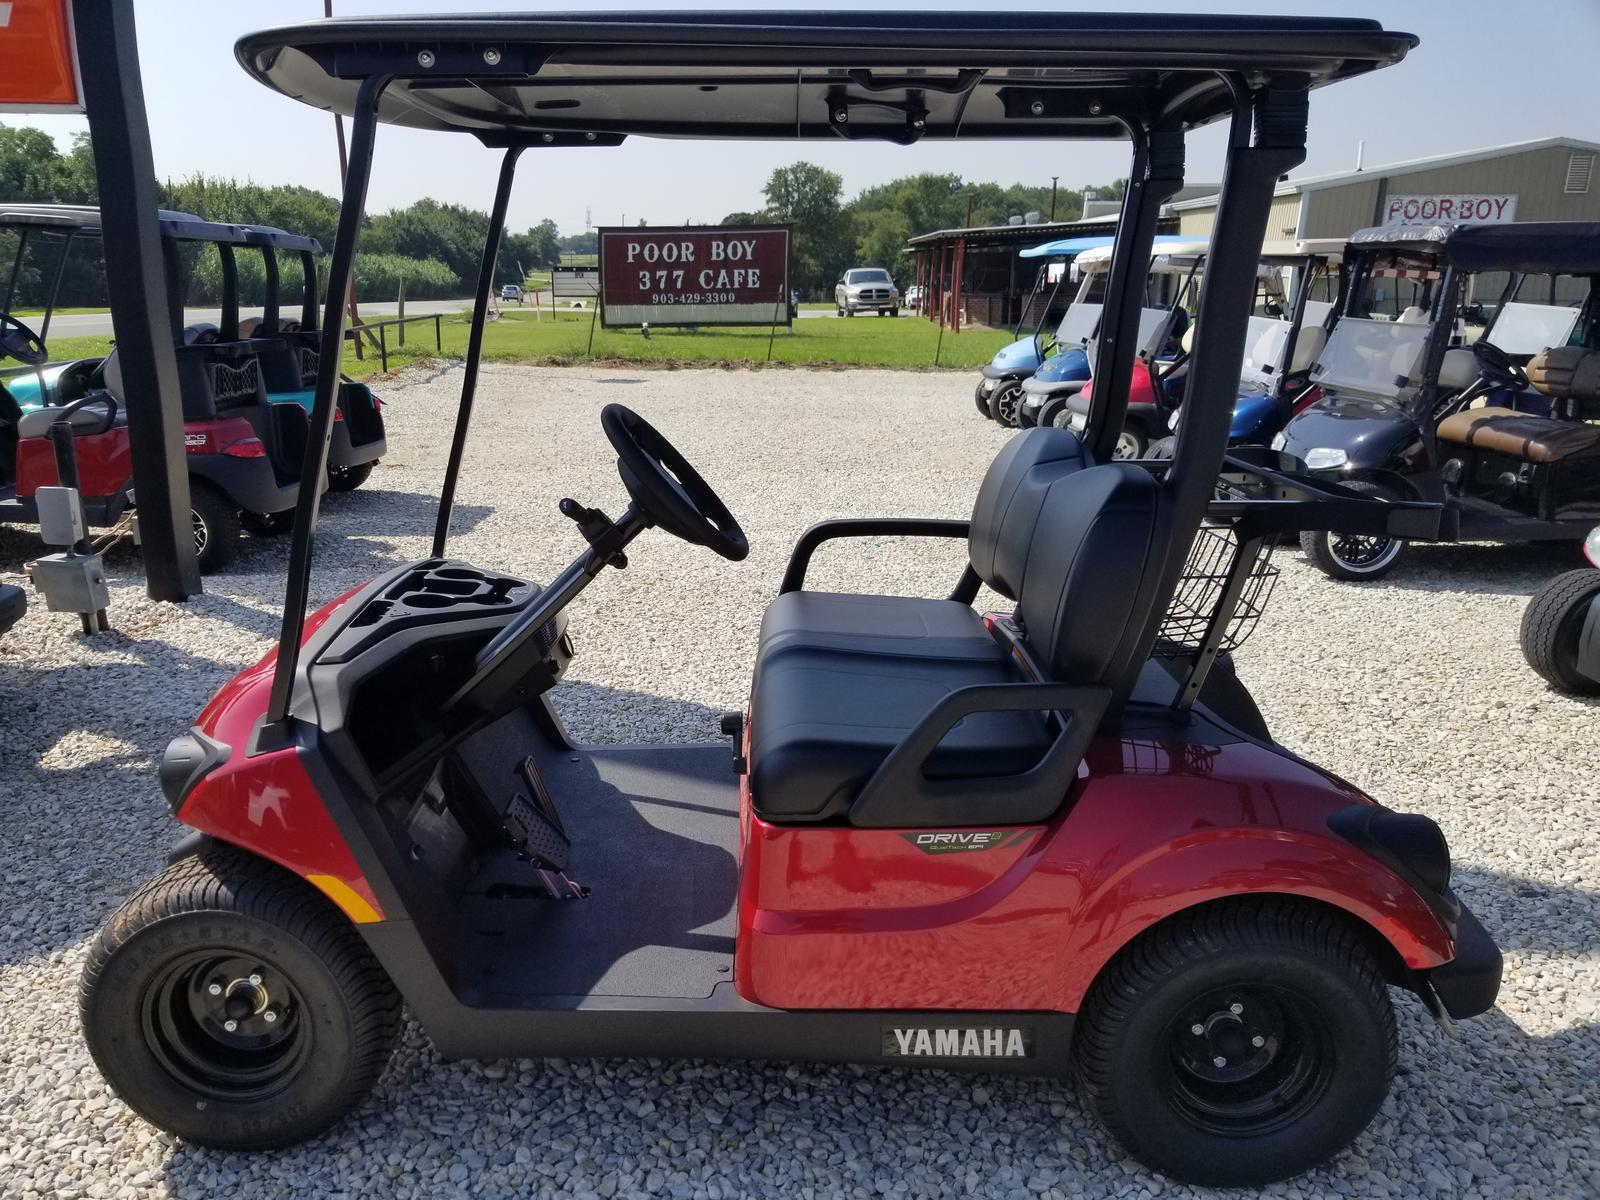 Inventory Golf Cart Solutions Collinsville, TX (888) 701-8502